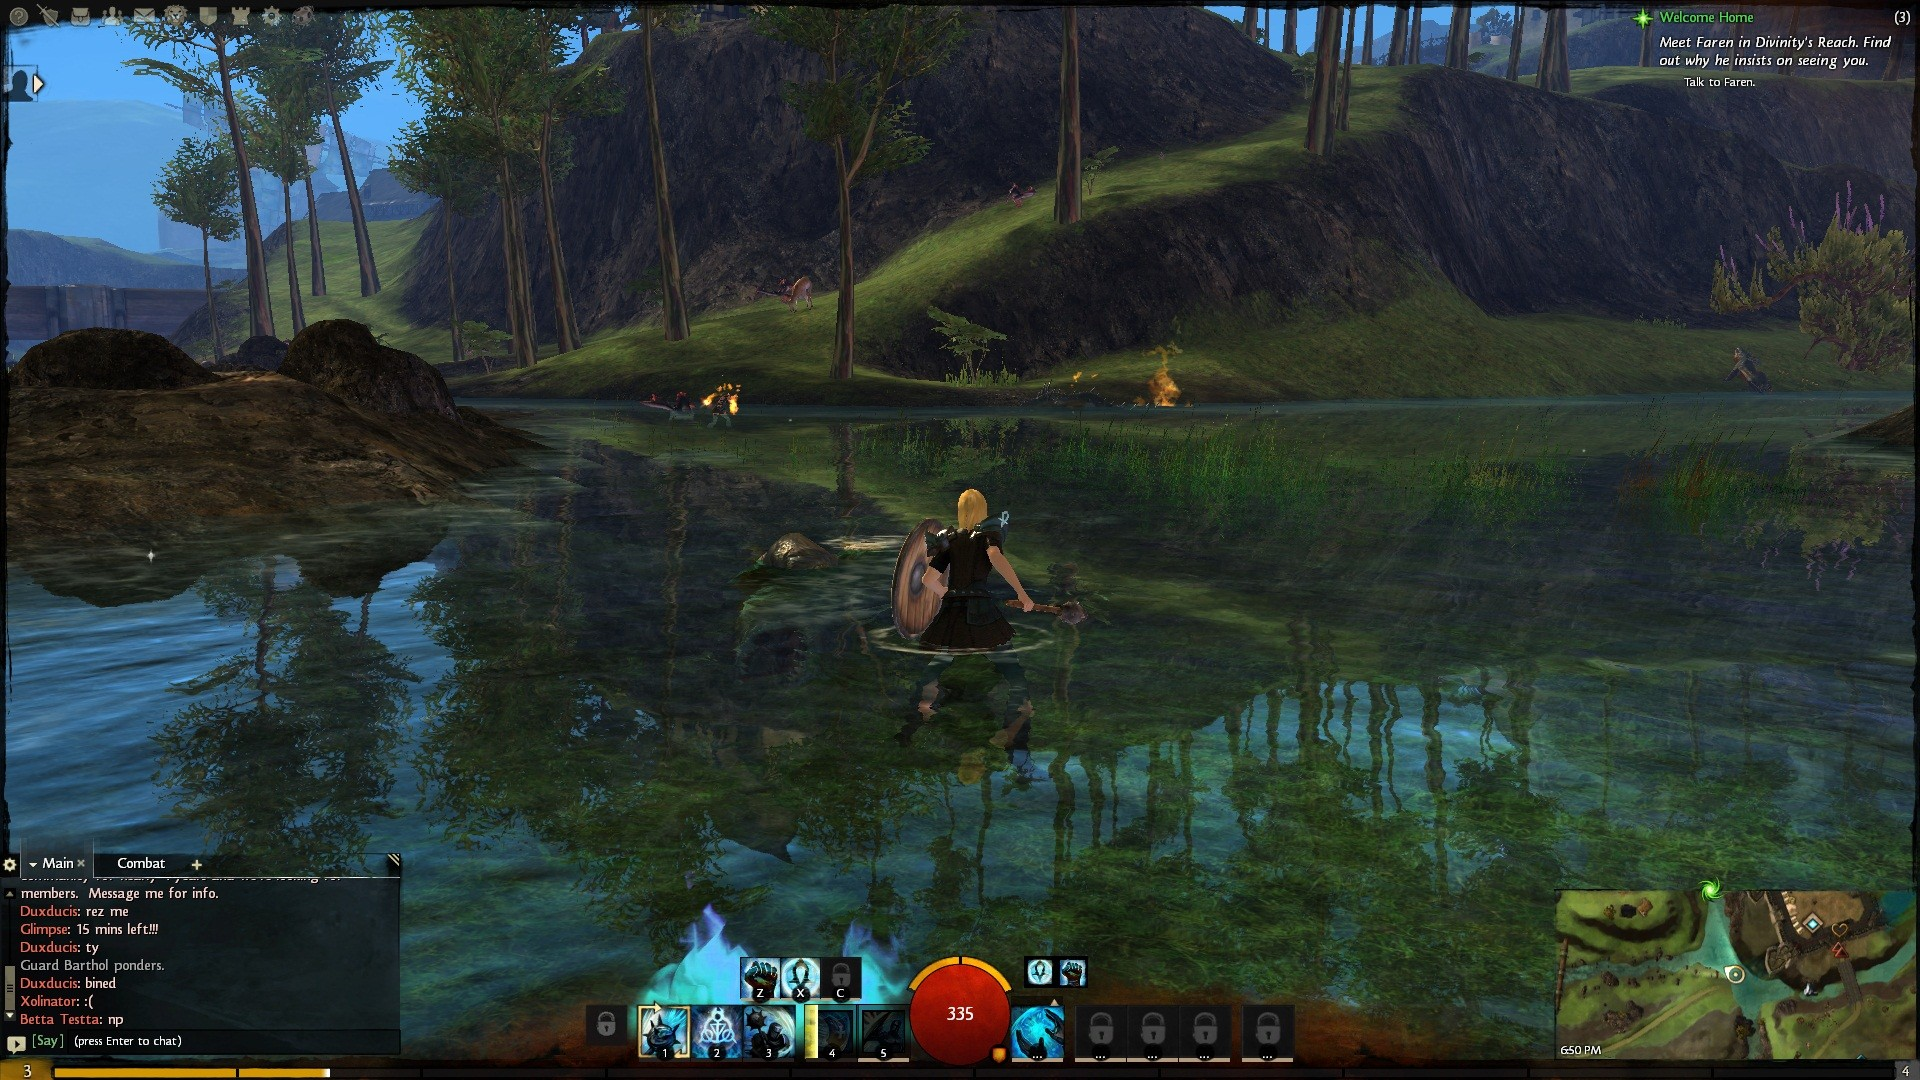 Guild Wars 2 - Water reflections are a bit much.